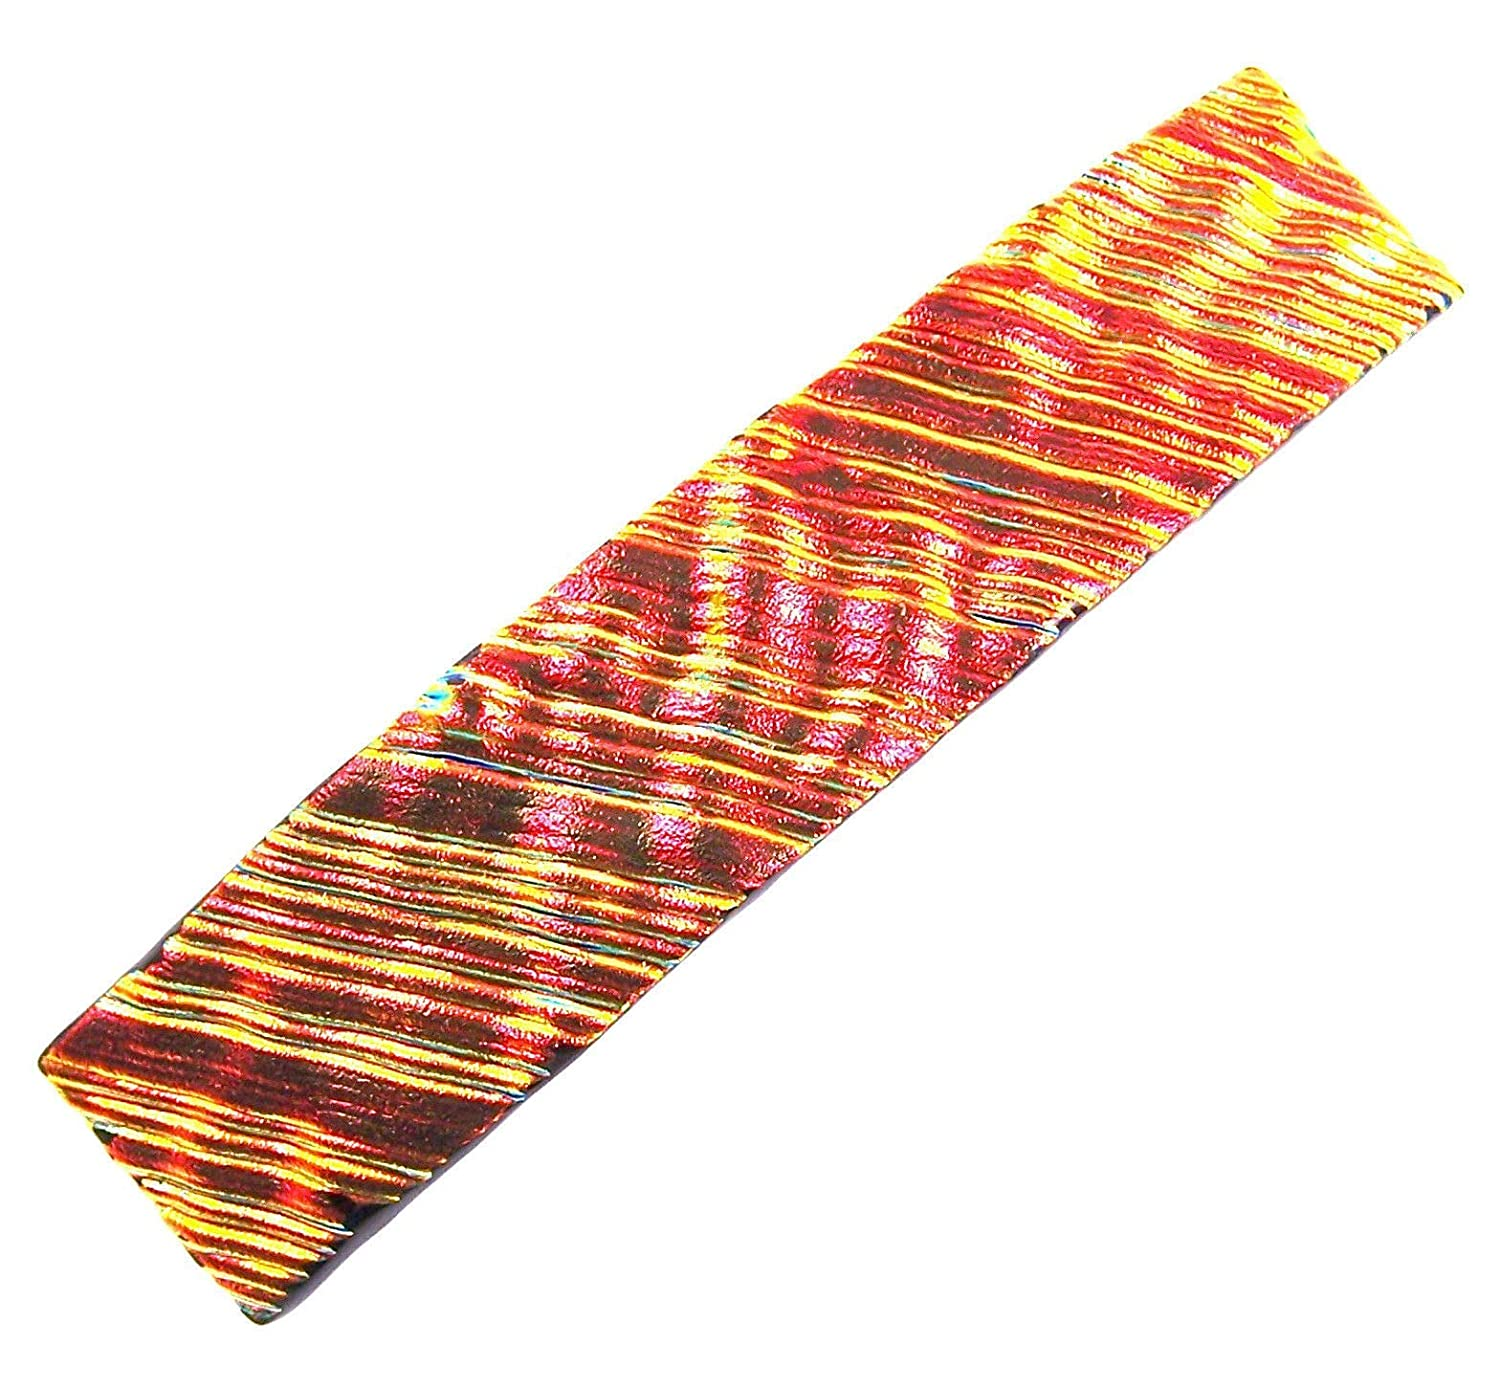 Our shop OFFers the best service Dichroic Glass Hair Barrette Max 86% OFF - 90mm Orange Copper Large 3.5